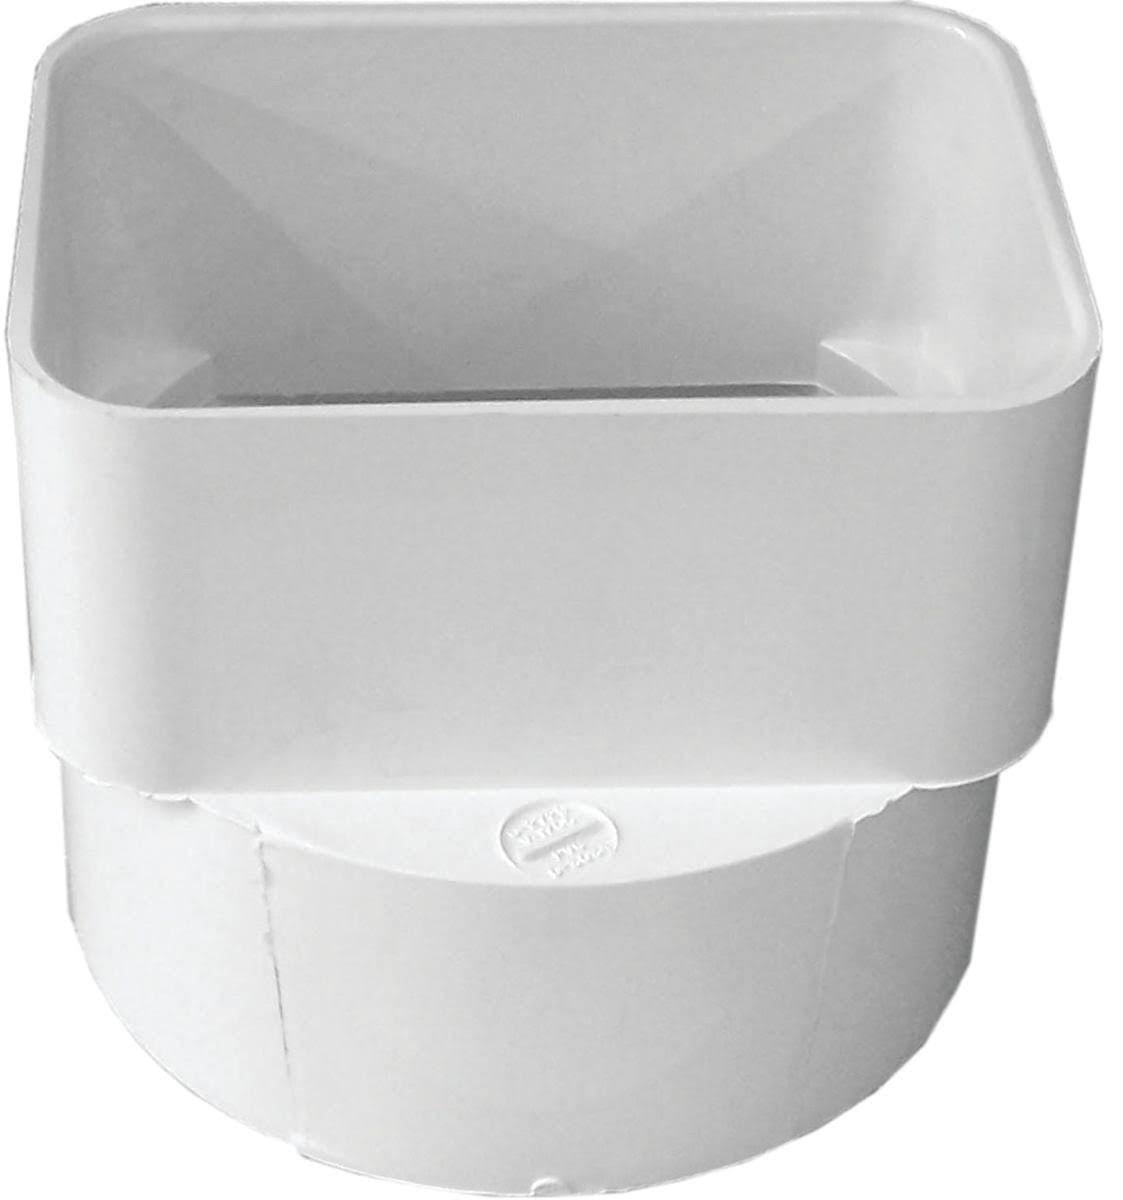 "Genova 45344 PVC Sewer and Drain Downspout Adapter - 3 ""x 4"""